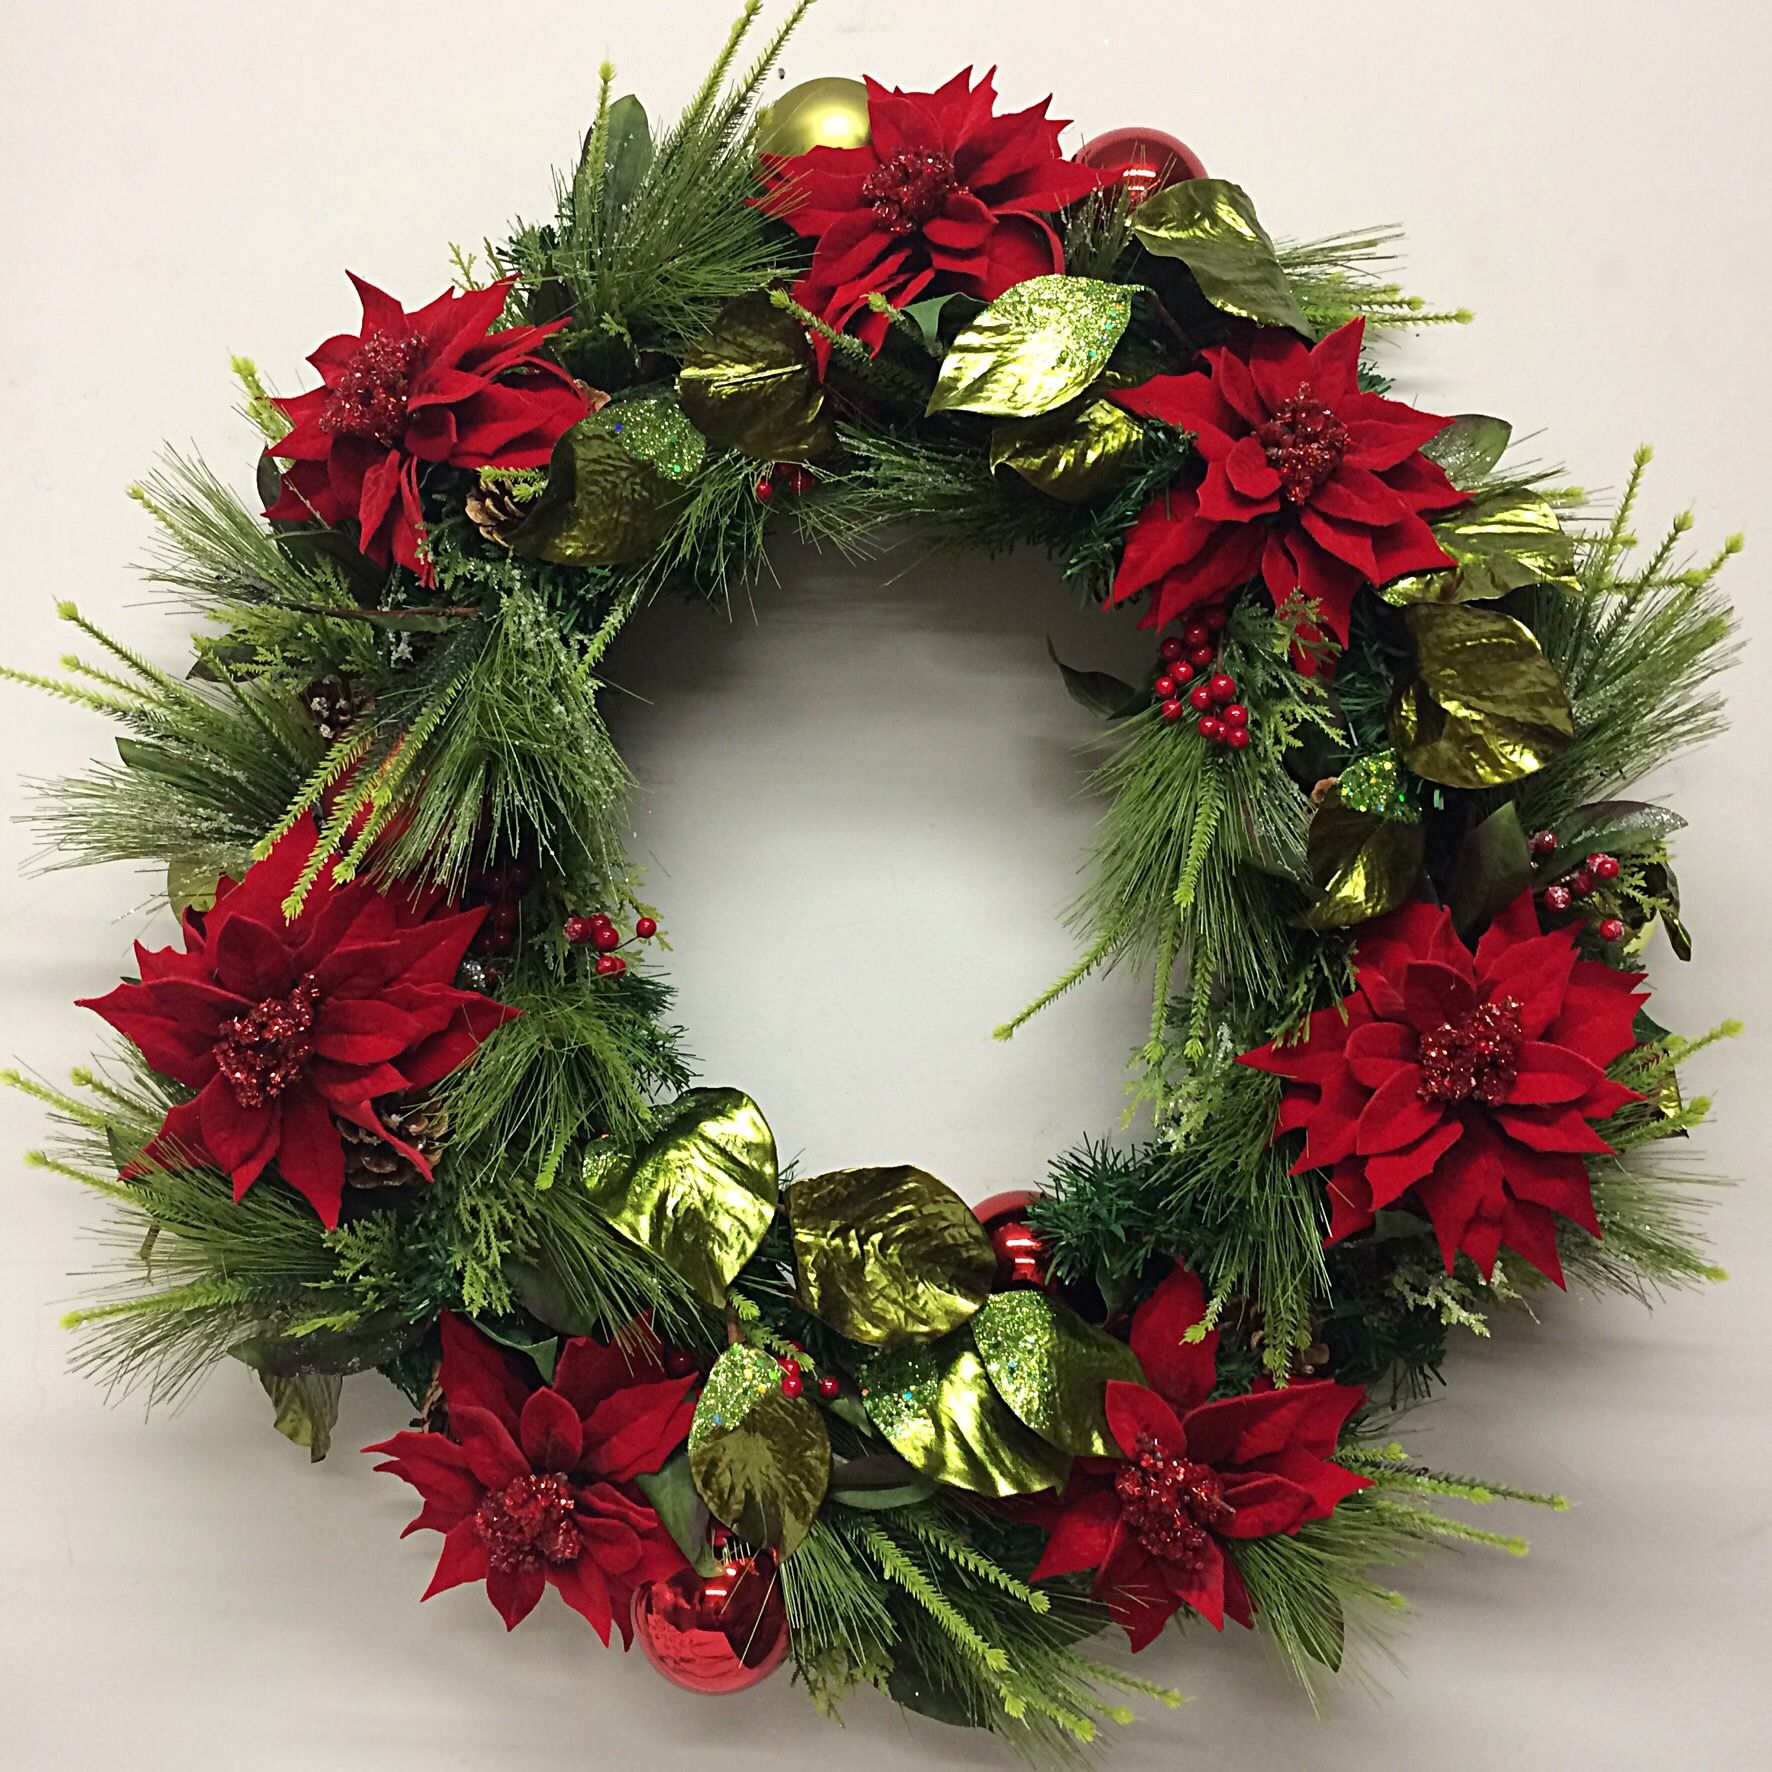 elegant christmas wreath with red velvet poinsettia and natural foliage - Elegant Christmas Wreaths